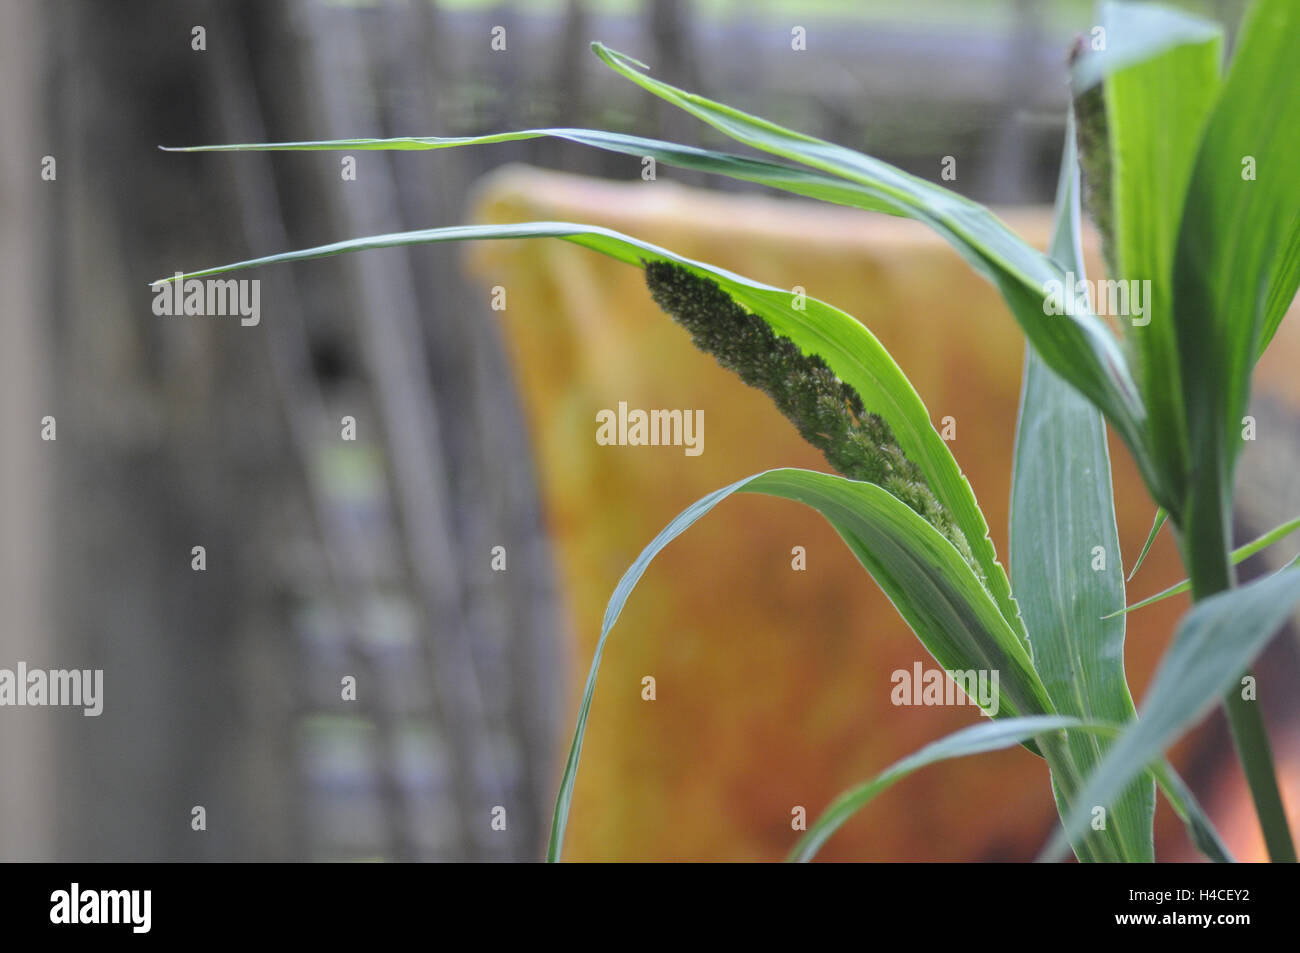 Reed grass in front of blurred background - Stock Image